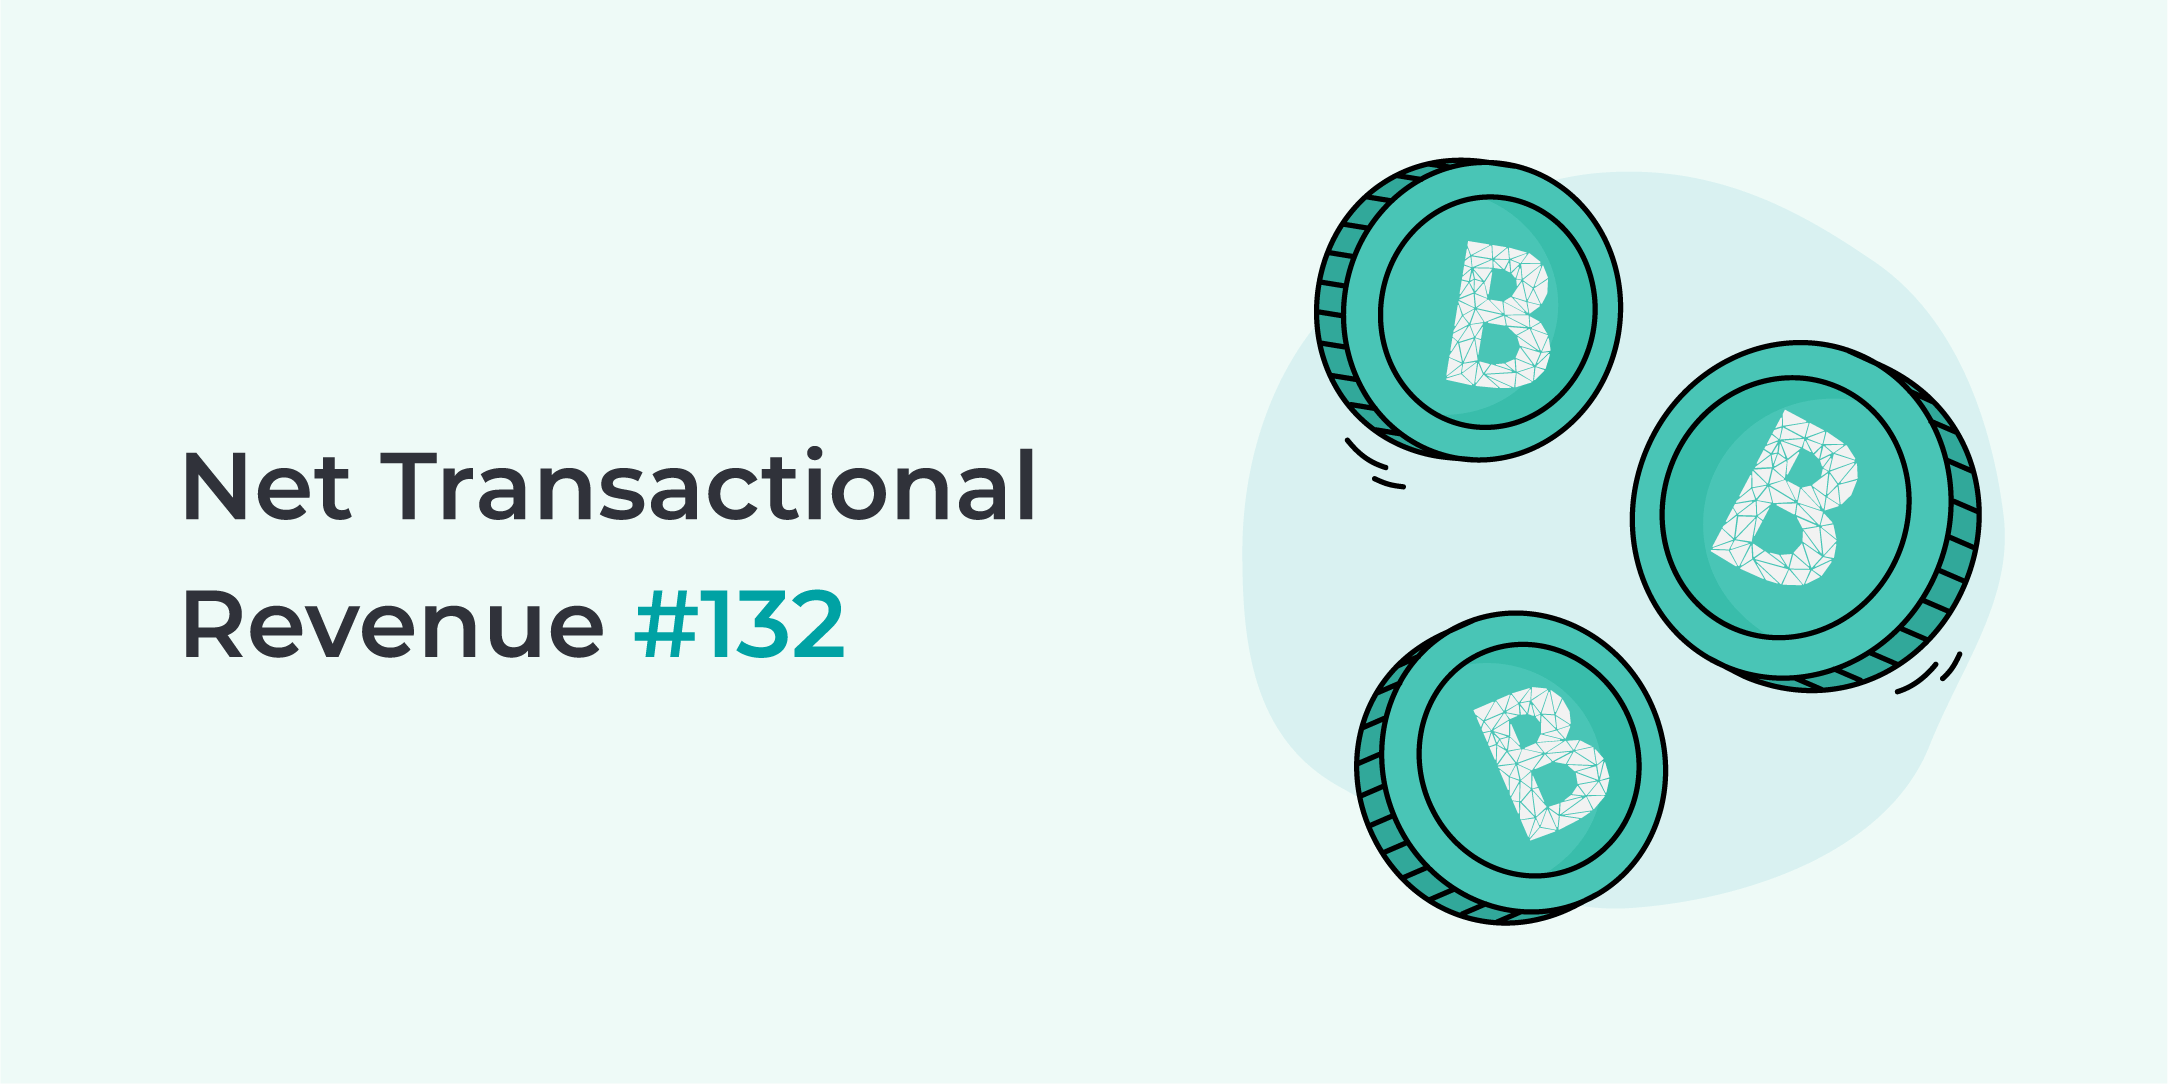 Bankera paid the 132th net transactional revenue